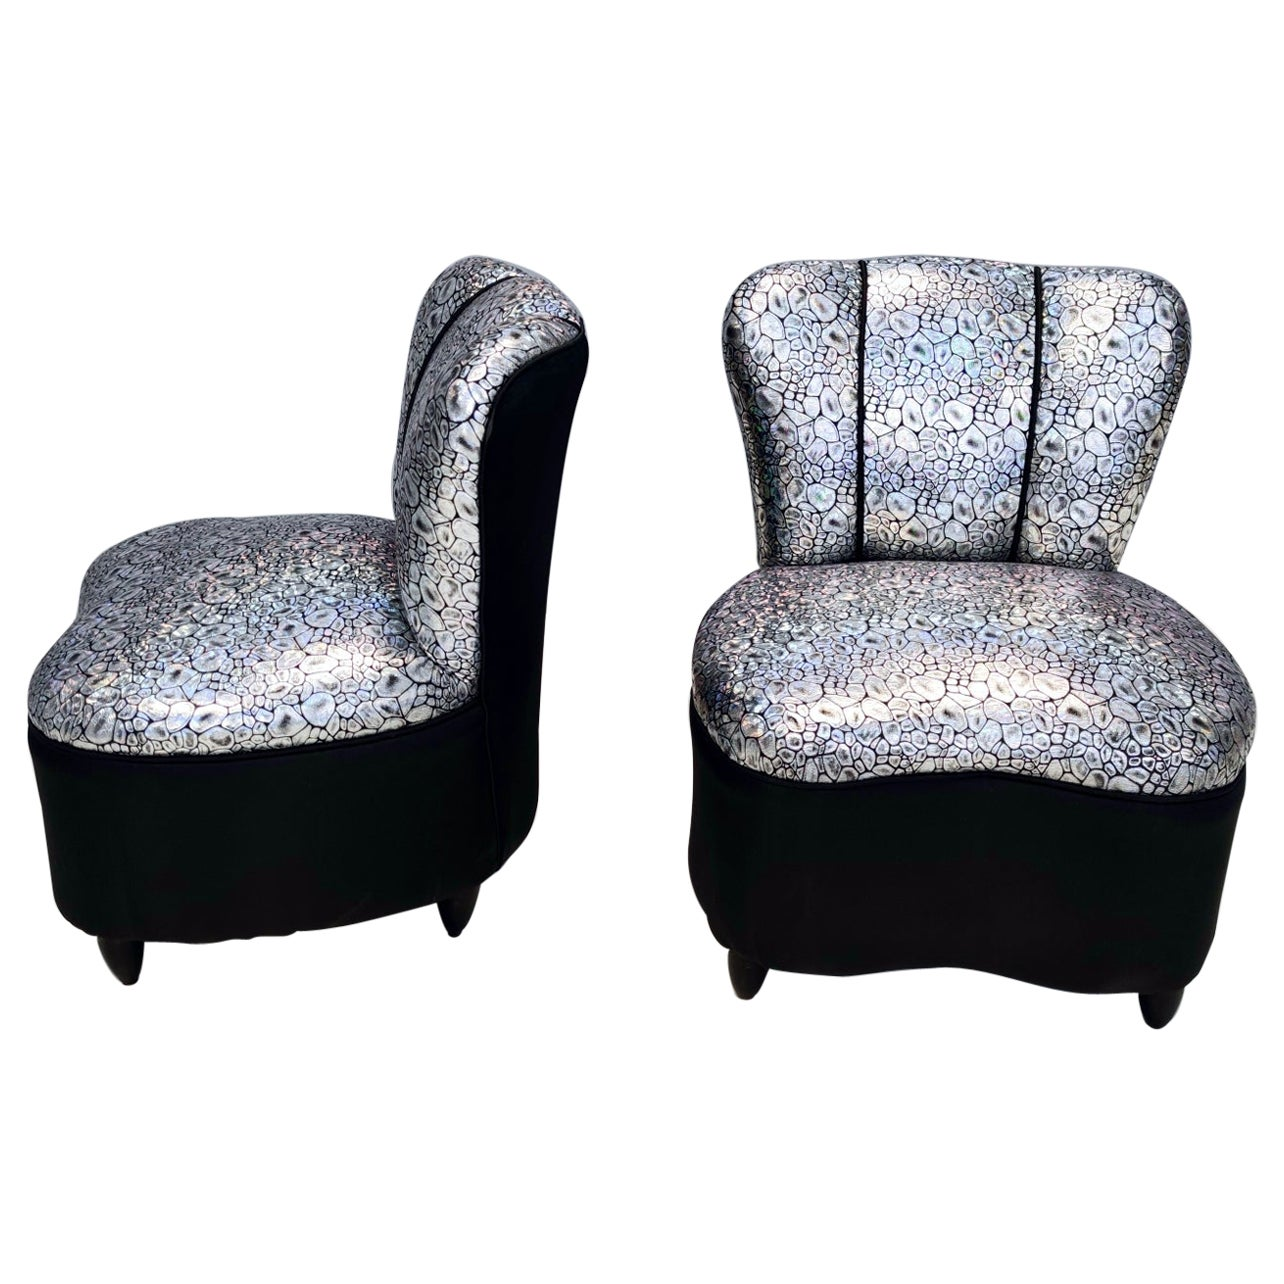 Pair of Midcentury Holographic Fabric Lounge Chairs, Italy